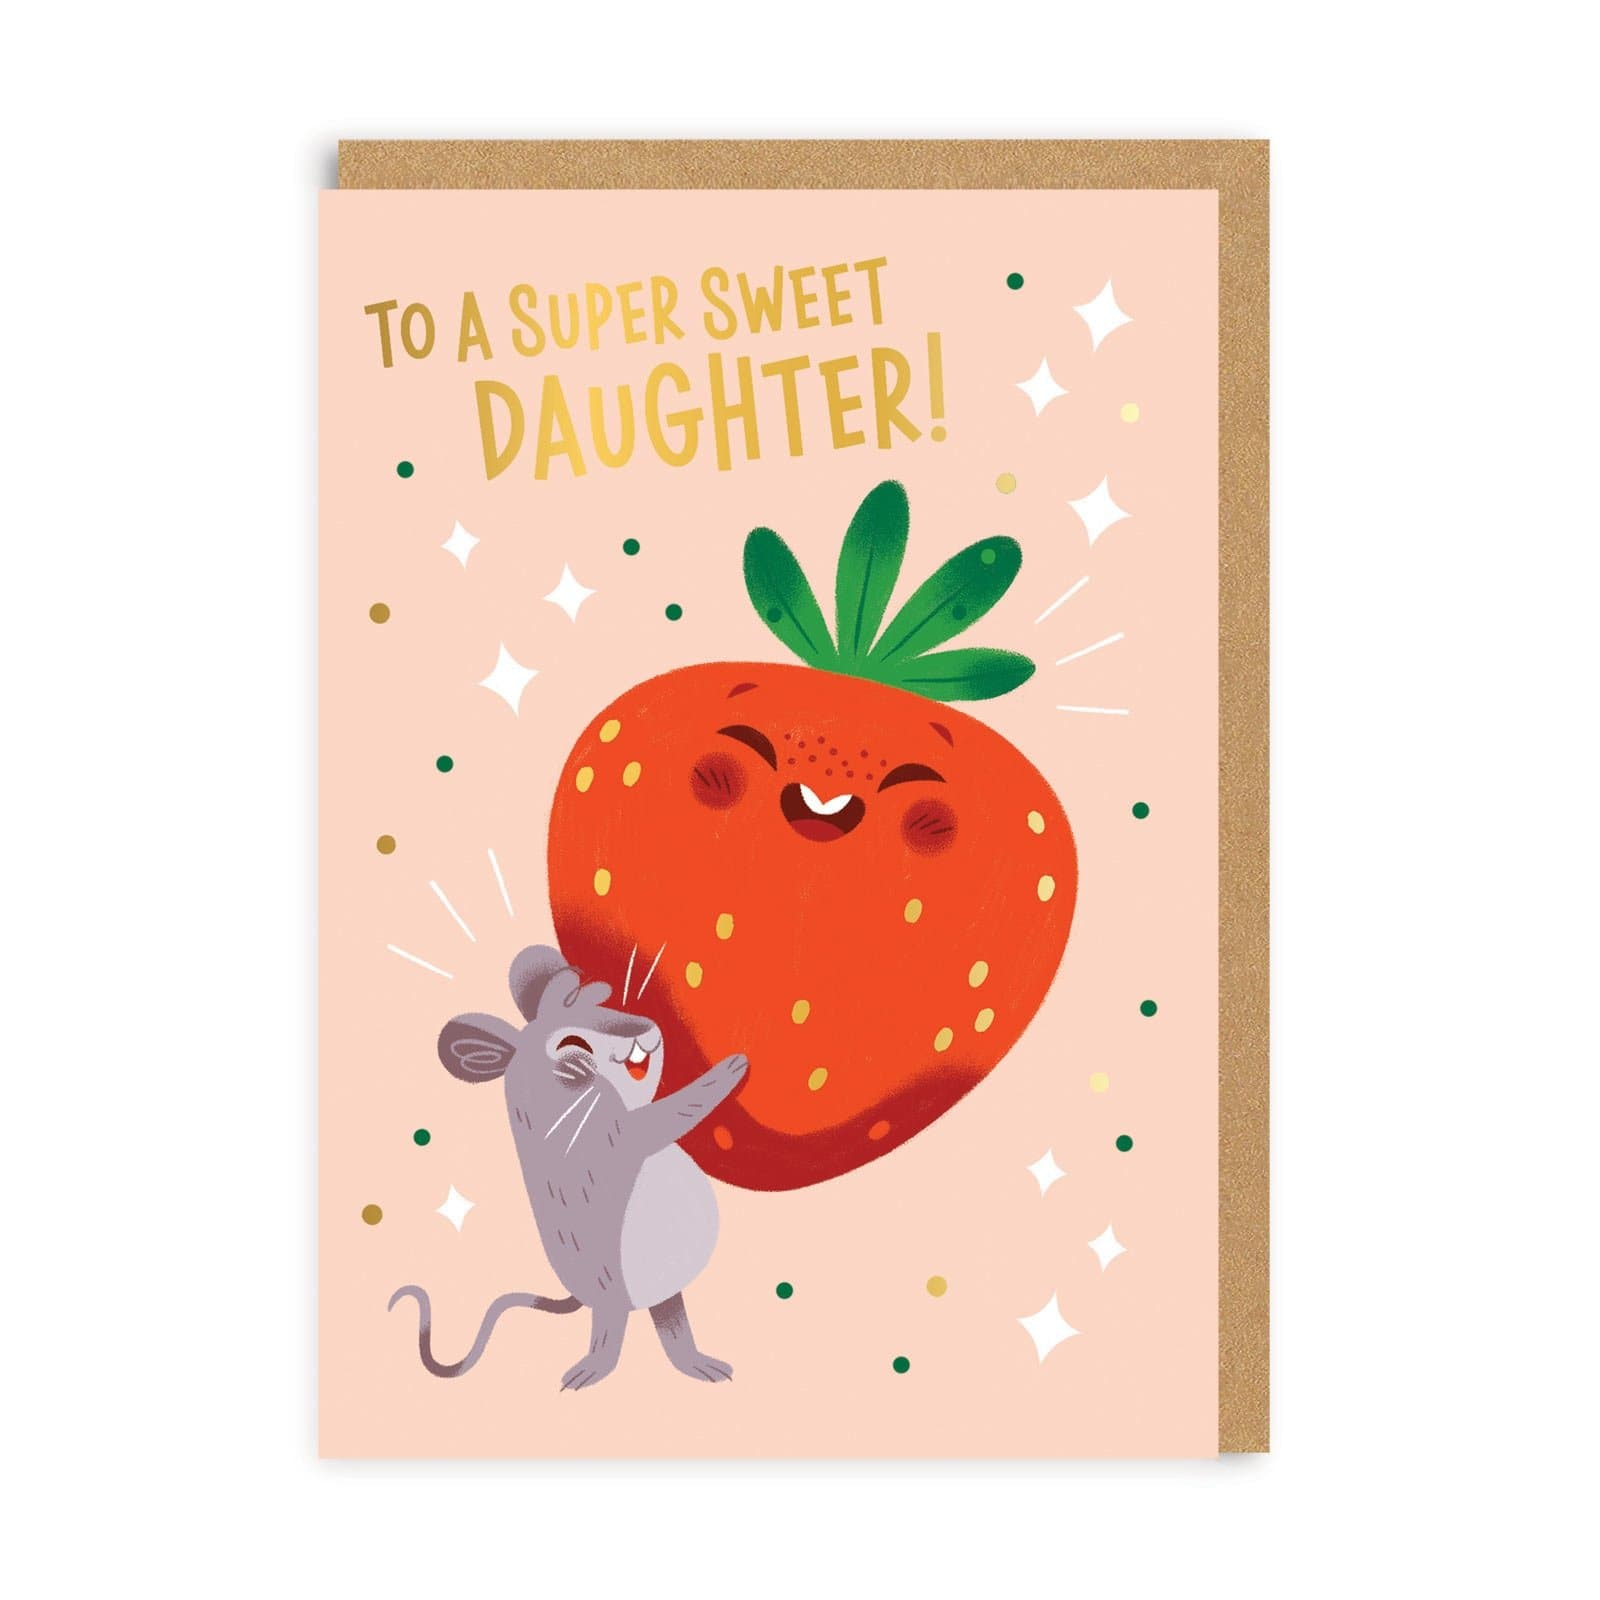 Daughter Super Sweet Greeting Card